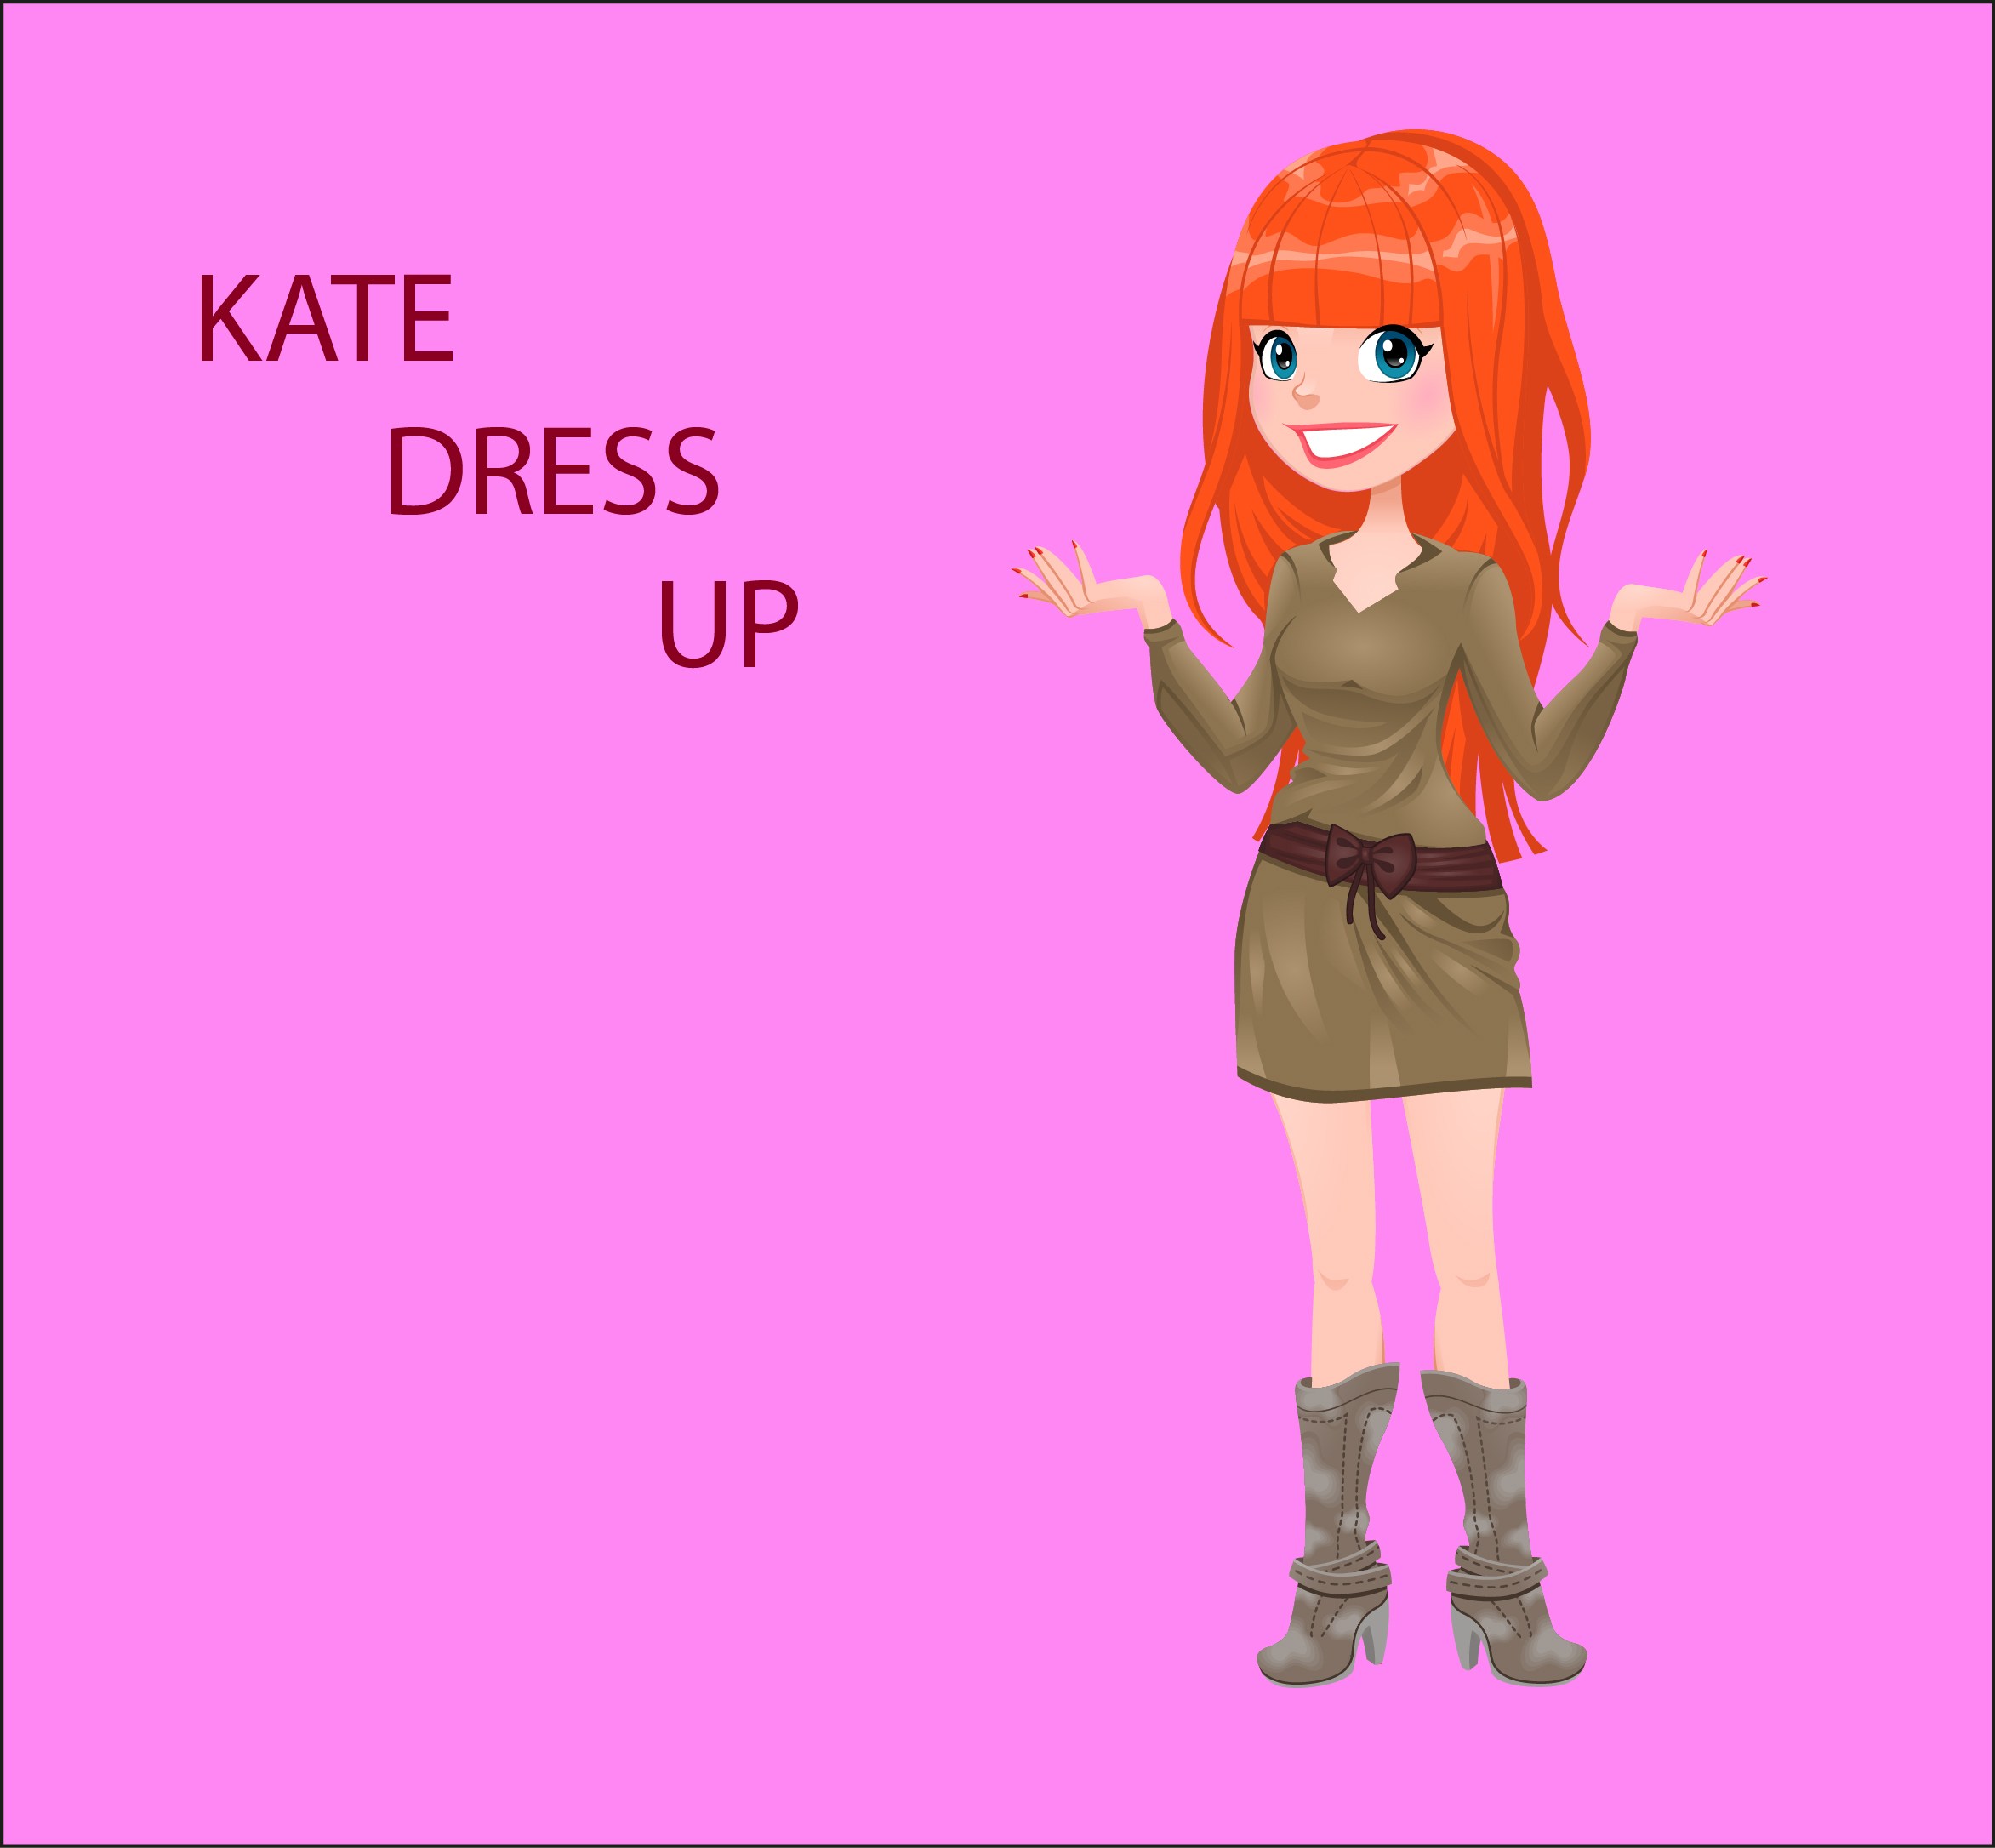 Kate Dress Up